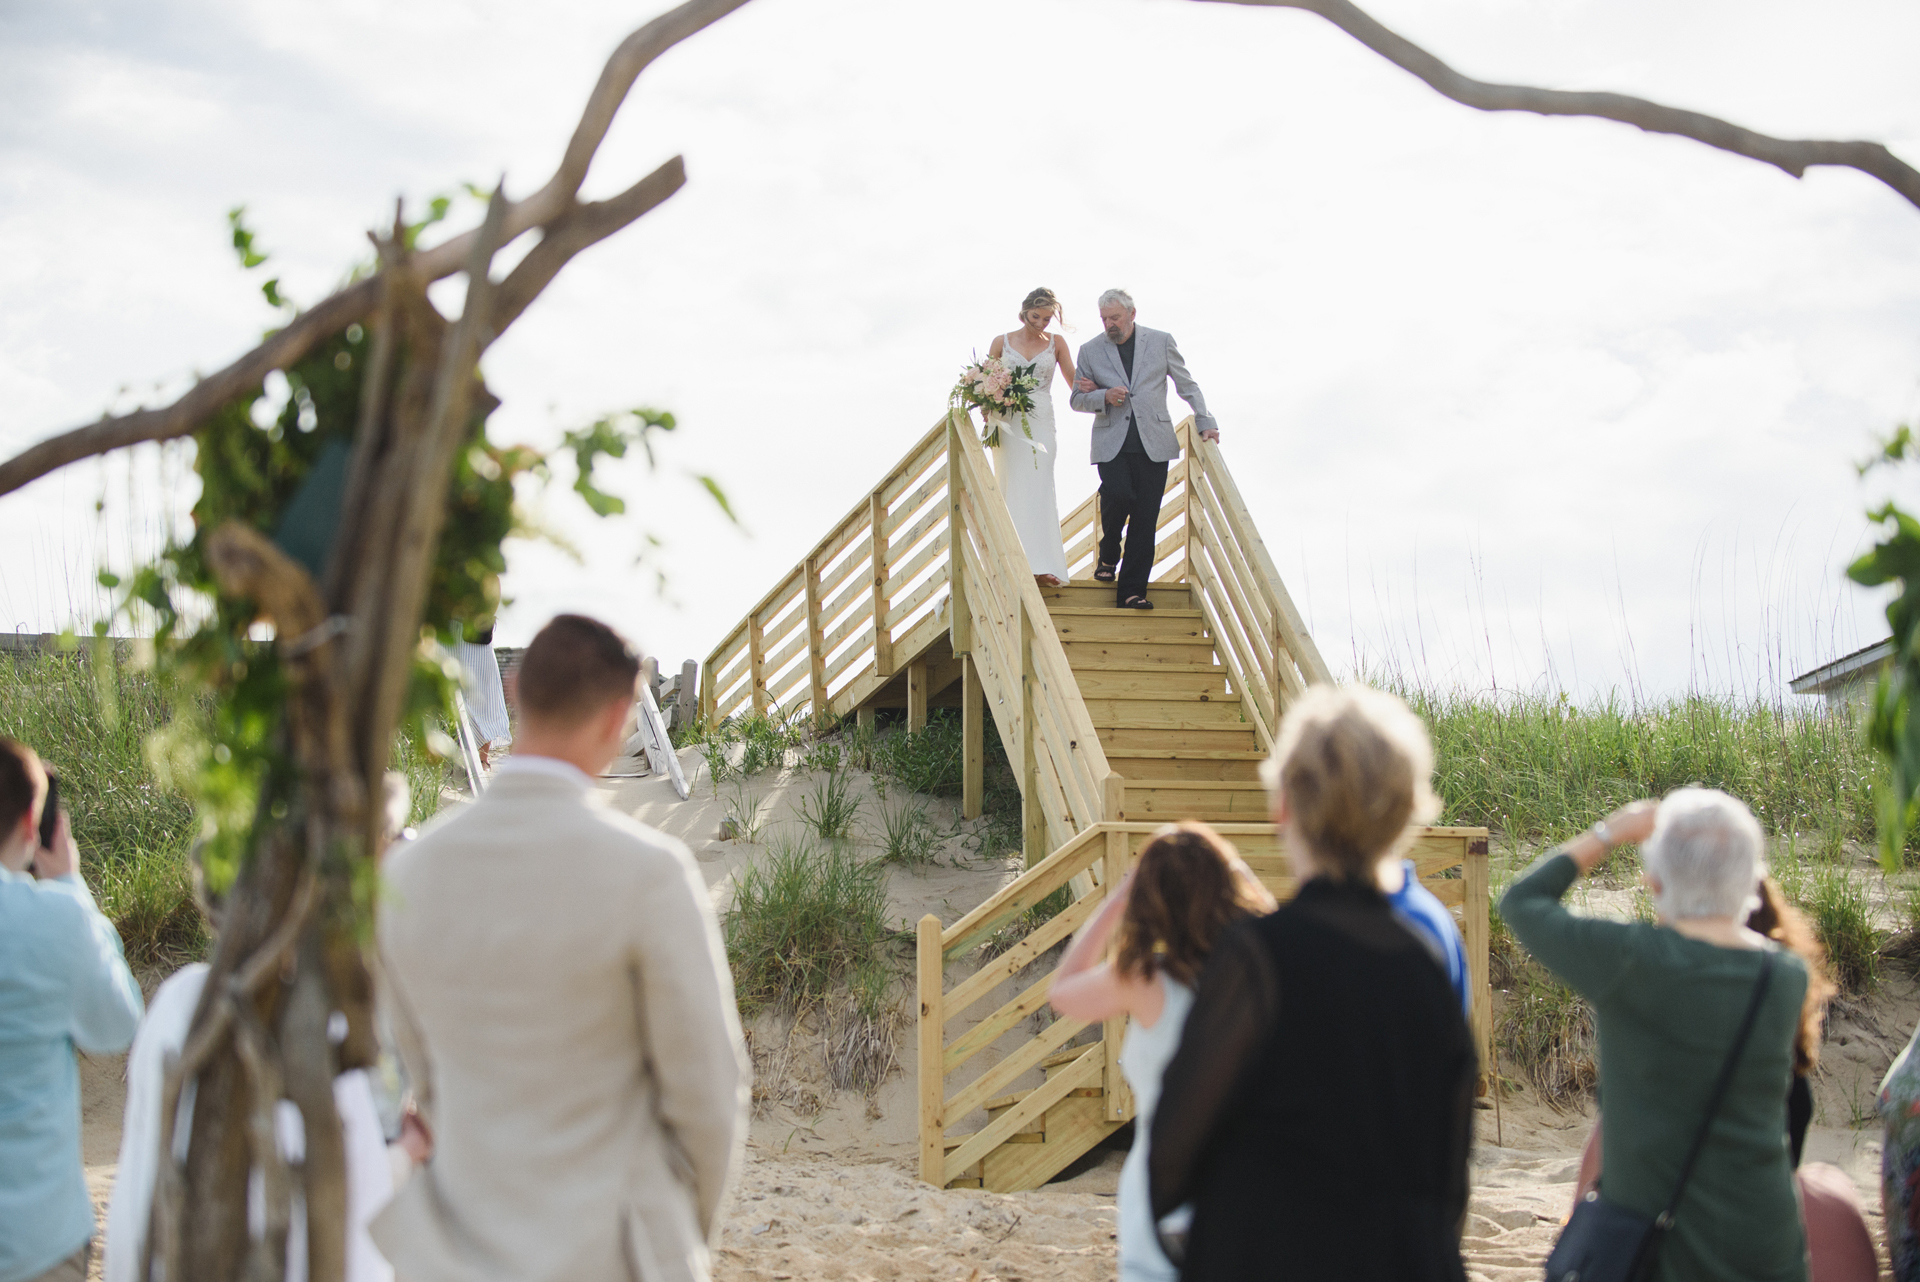 North Carolina Beach Elopement Ceremony Image | The bride and her father walk down beach stairs to the wedding ceremony